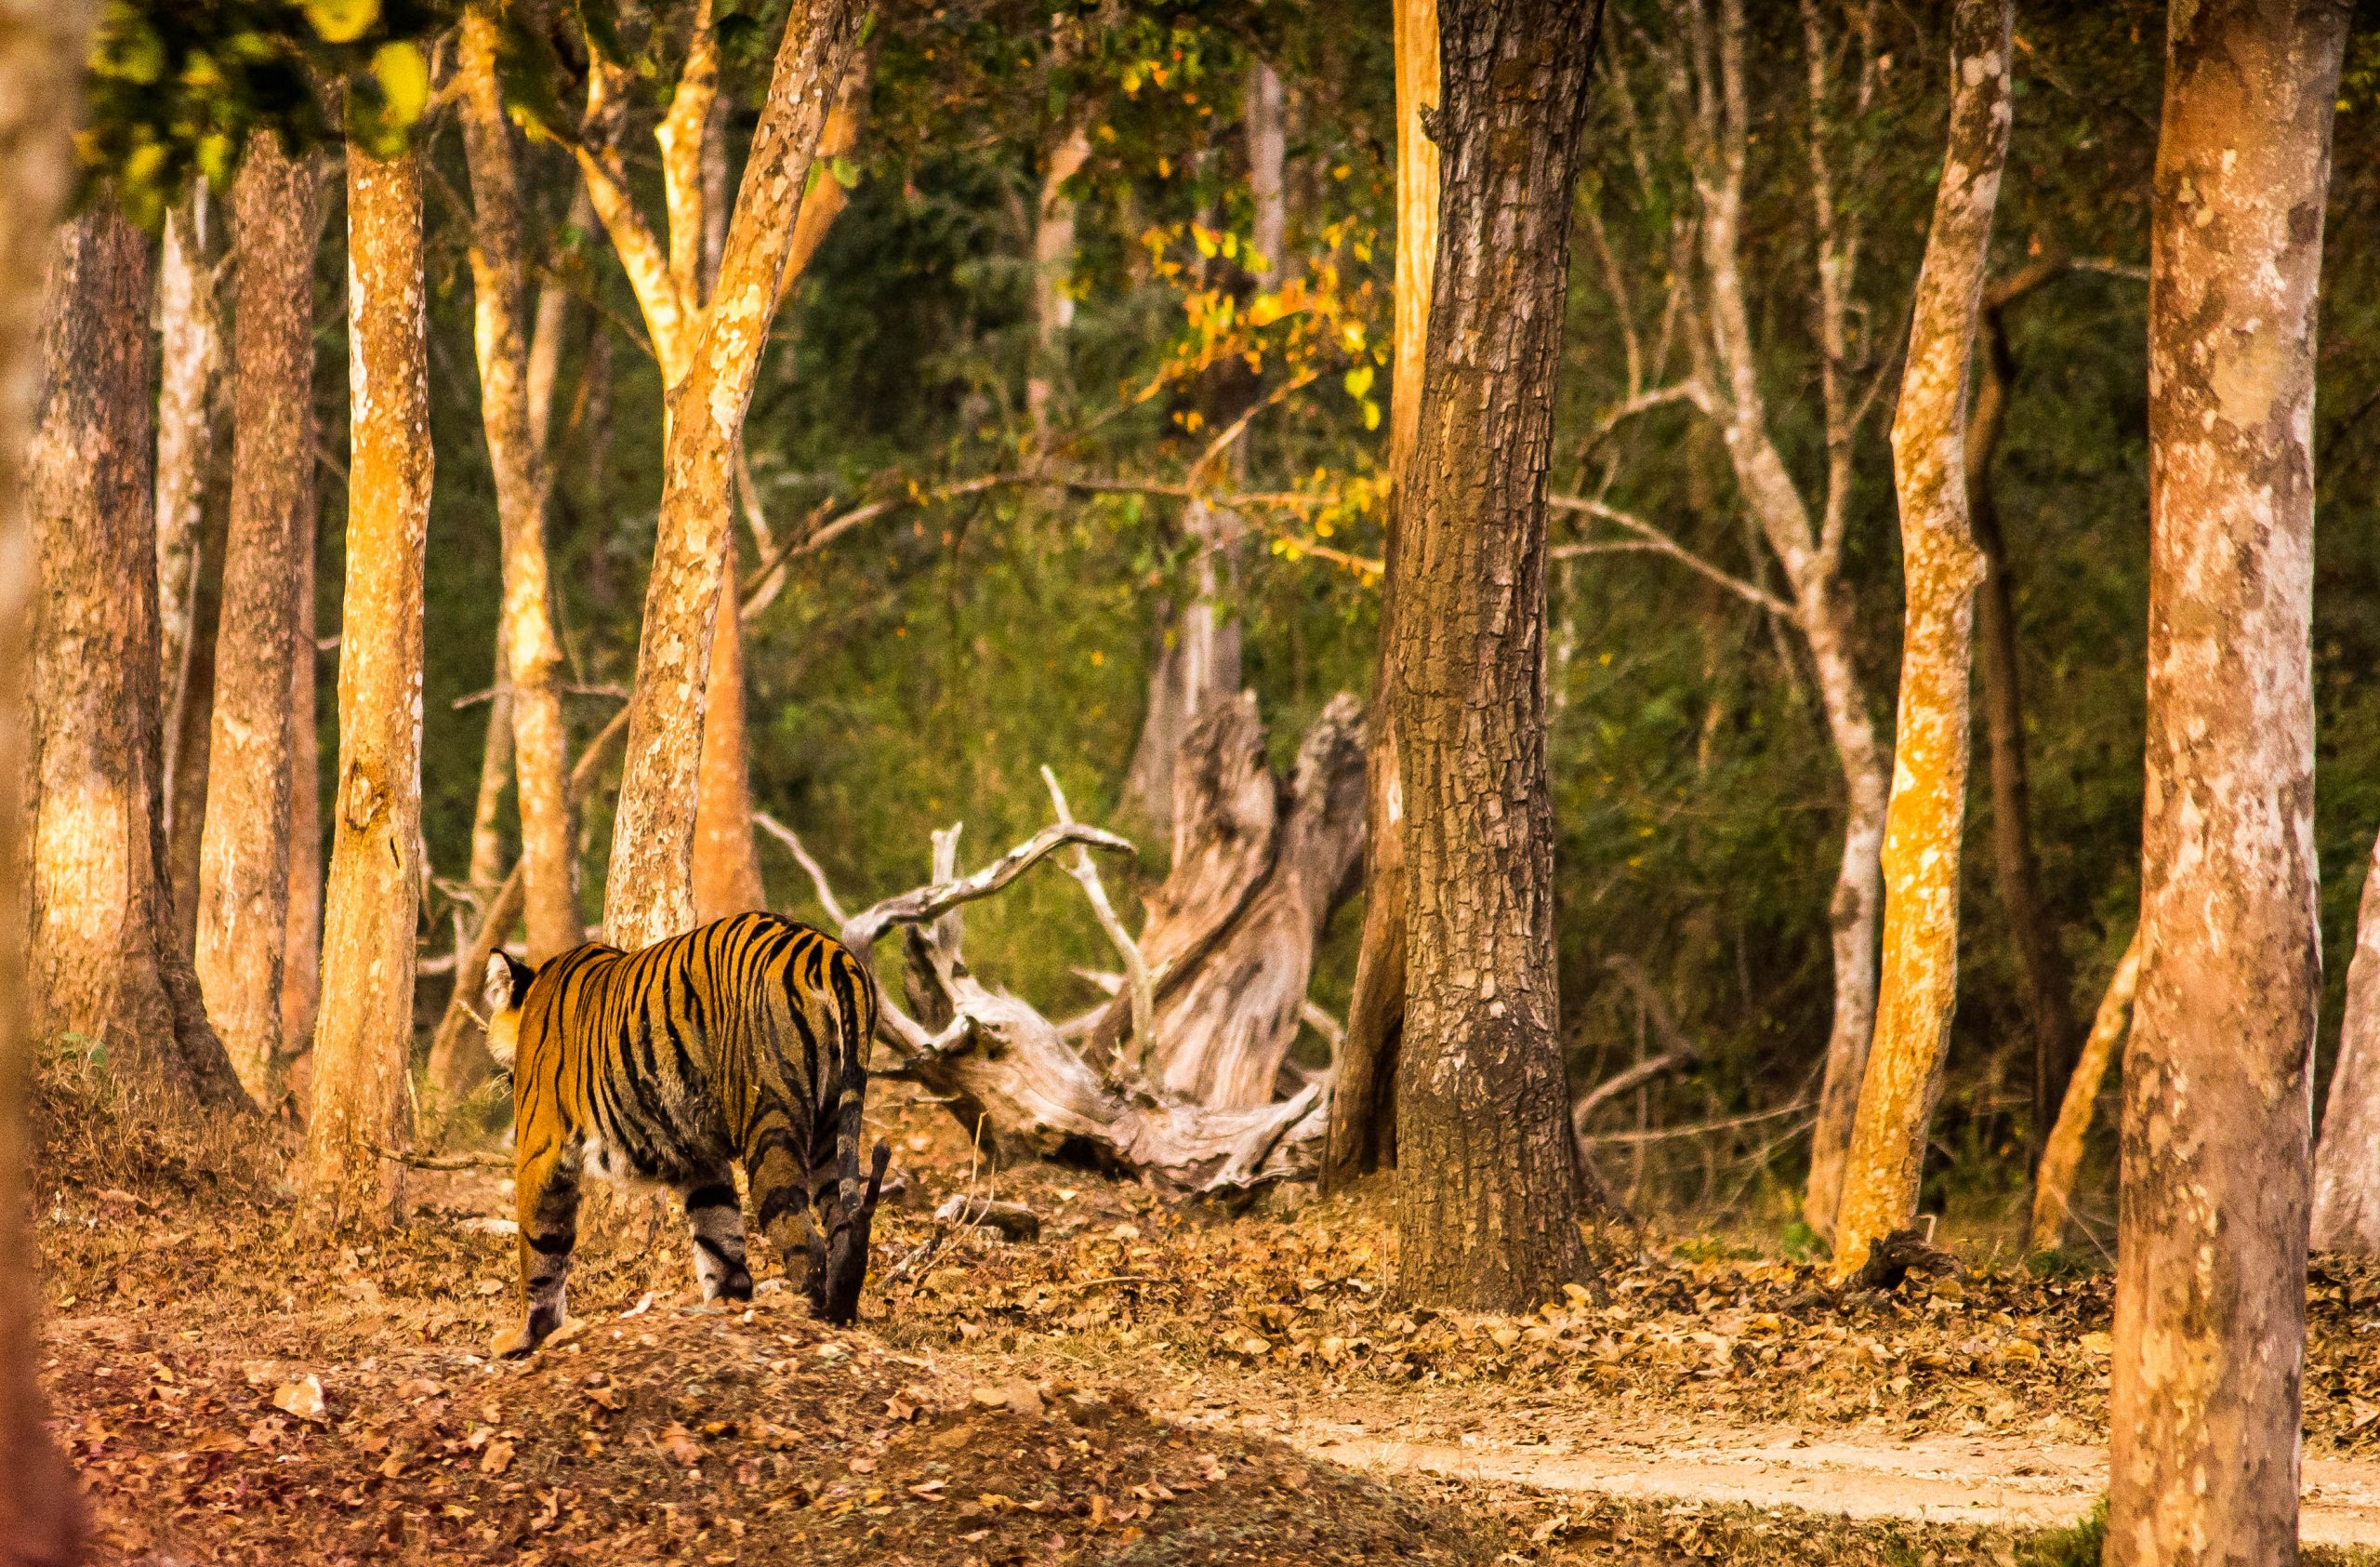 Tiger in forest